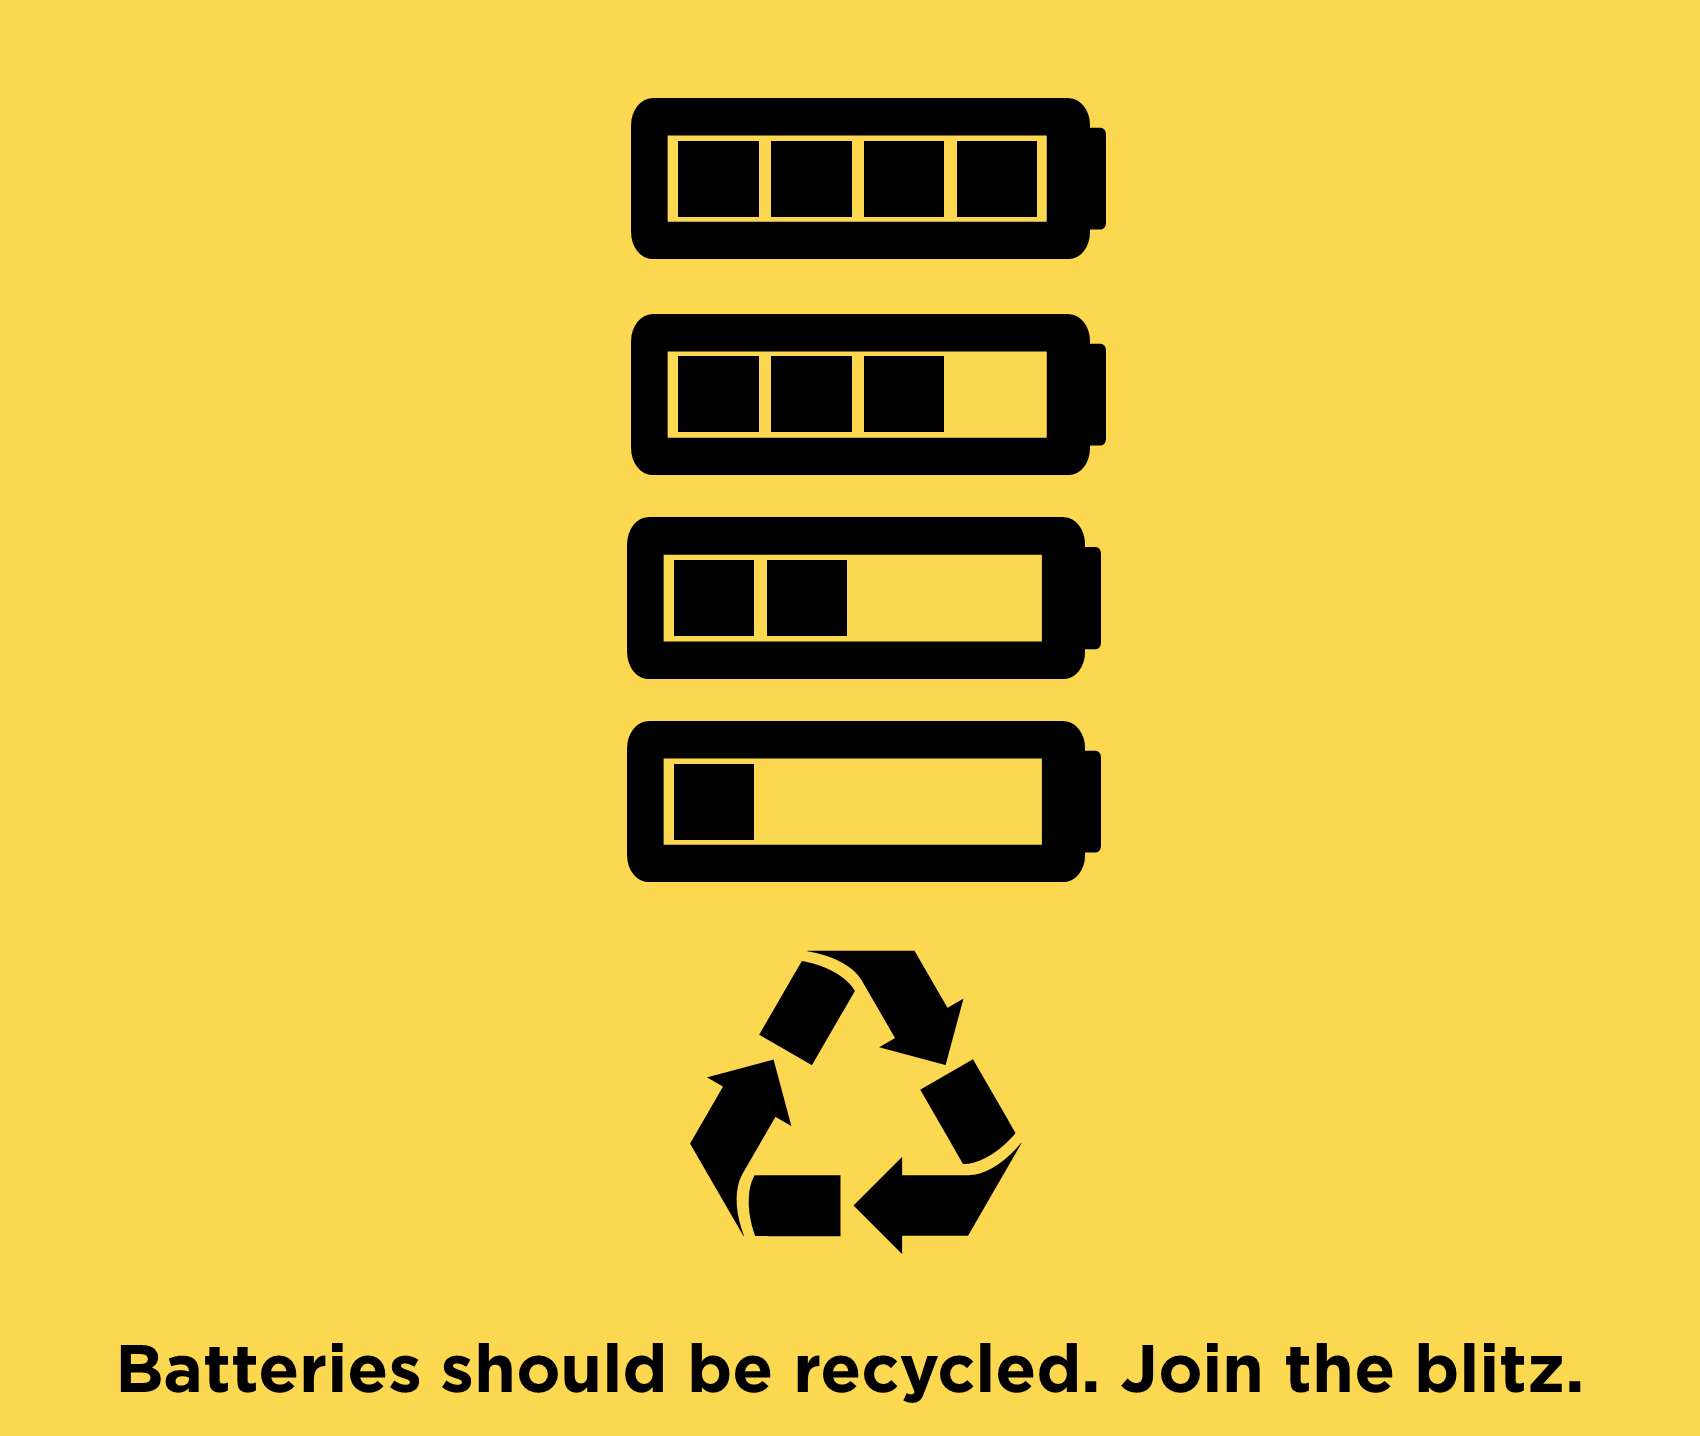 Batteries should be recycled. Join the blitz.